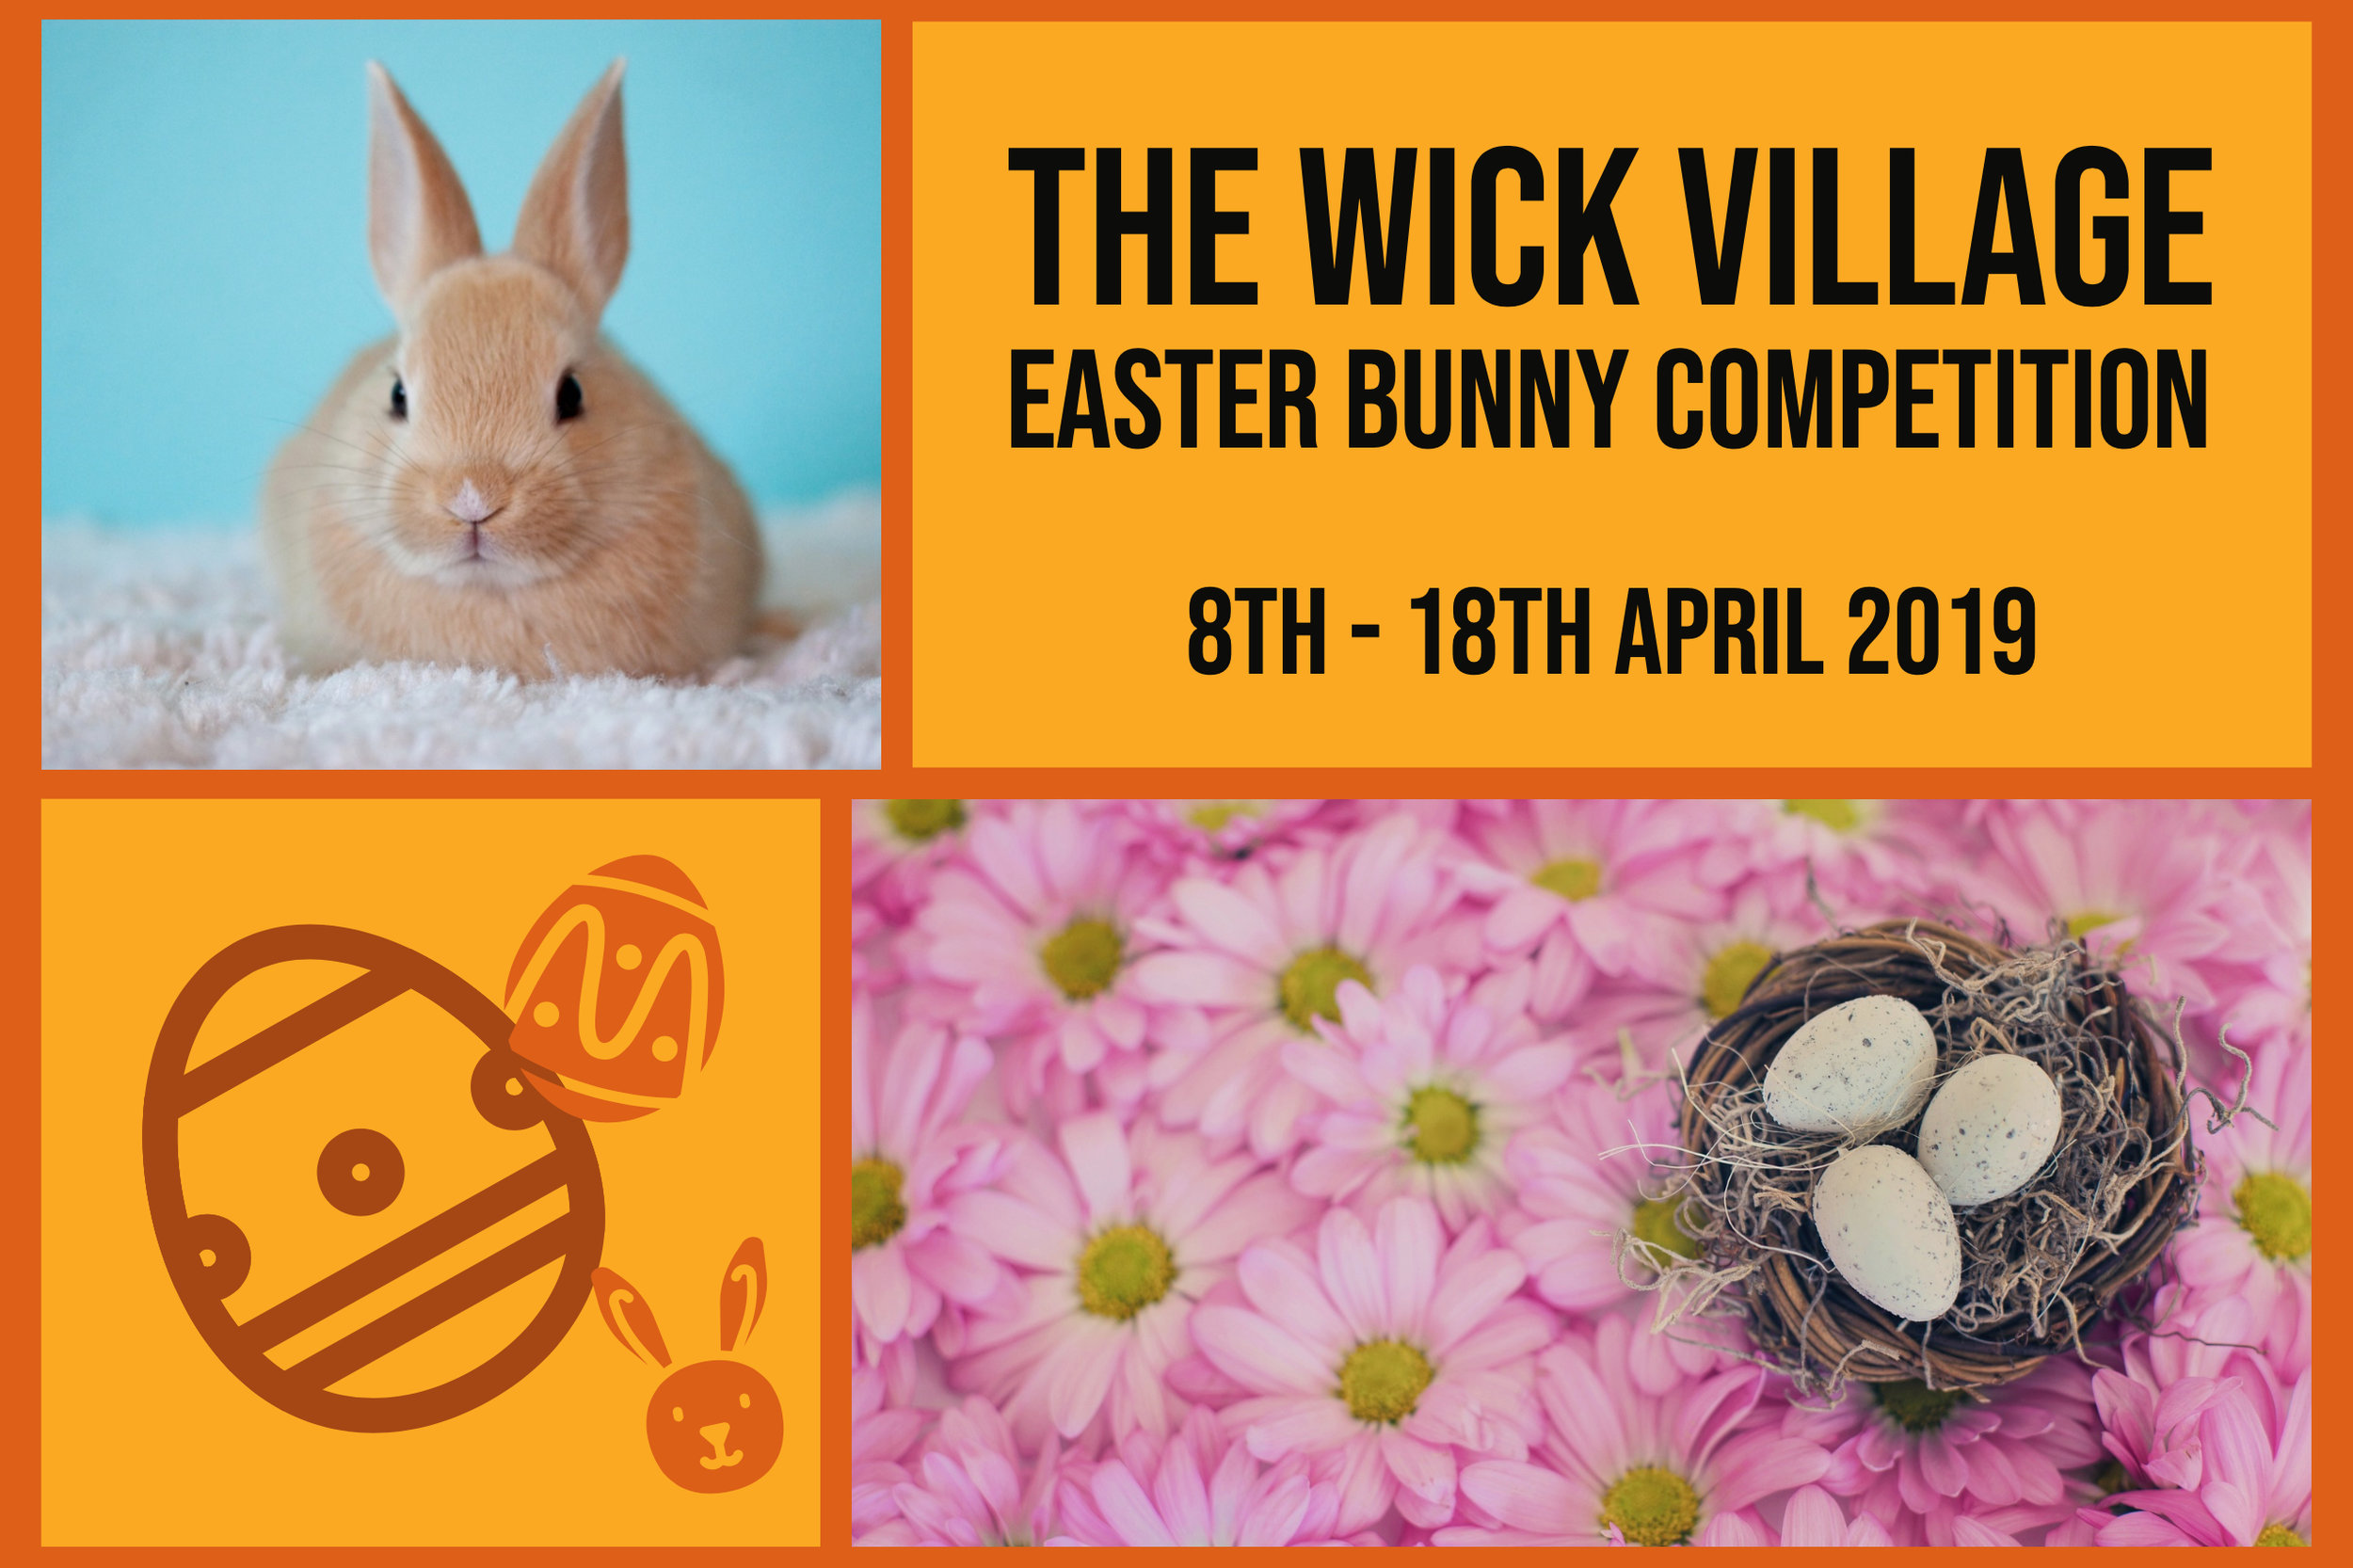 The Wick Village Easter Bunny Competition 2019.